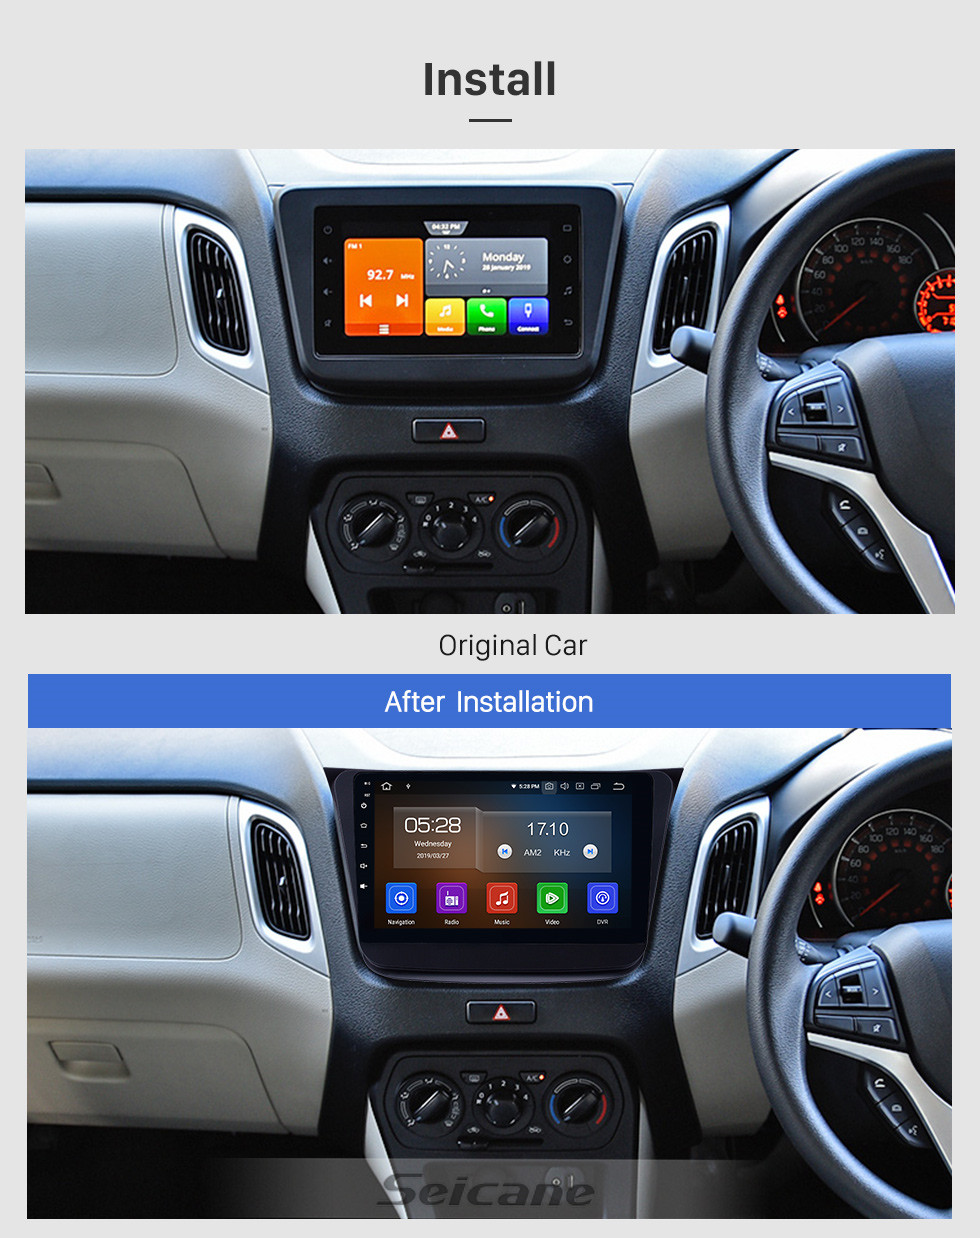 Seicane HD Touchscreen 2019 Suzuki Wagon-R Android 10.0 9 inch GPS Navigation Radio Bluetooth USB Carplay WIFI AUX support DAB+ Steering Wheel Control